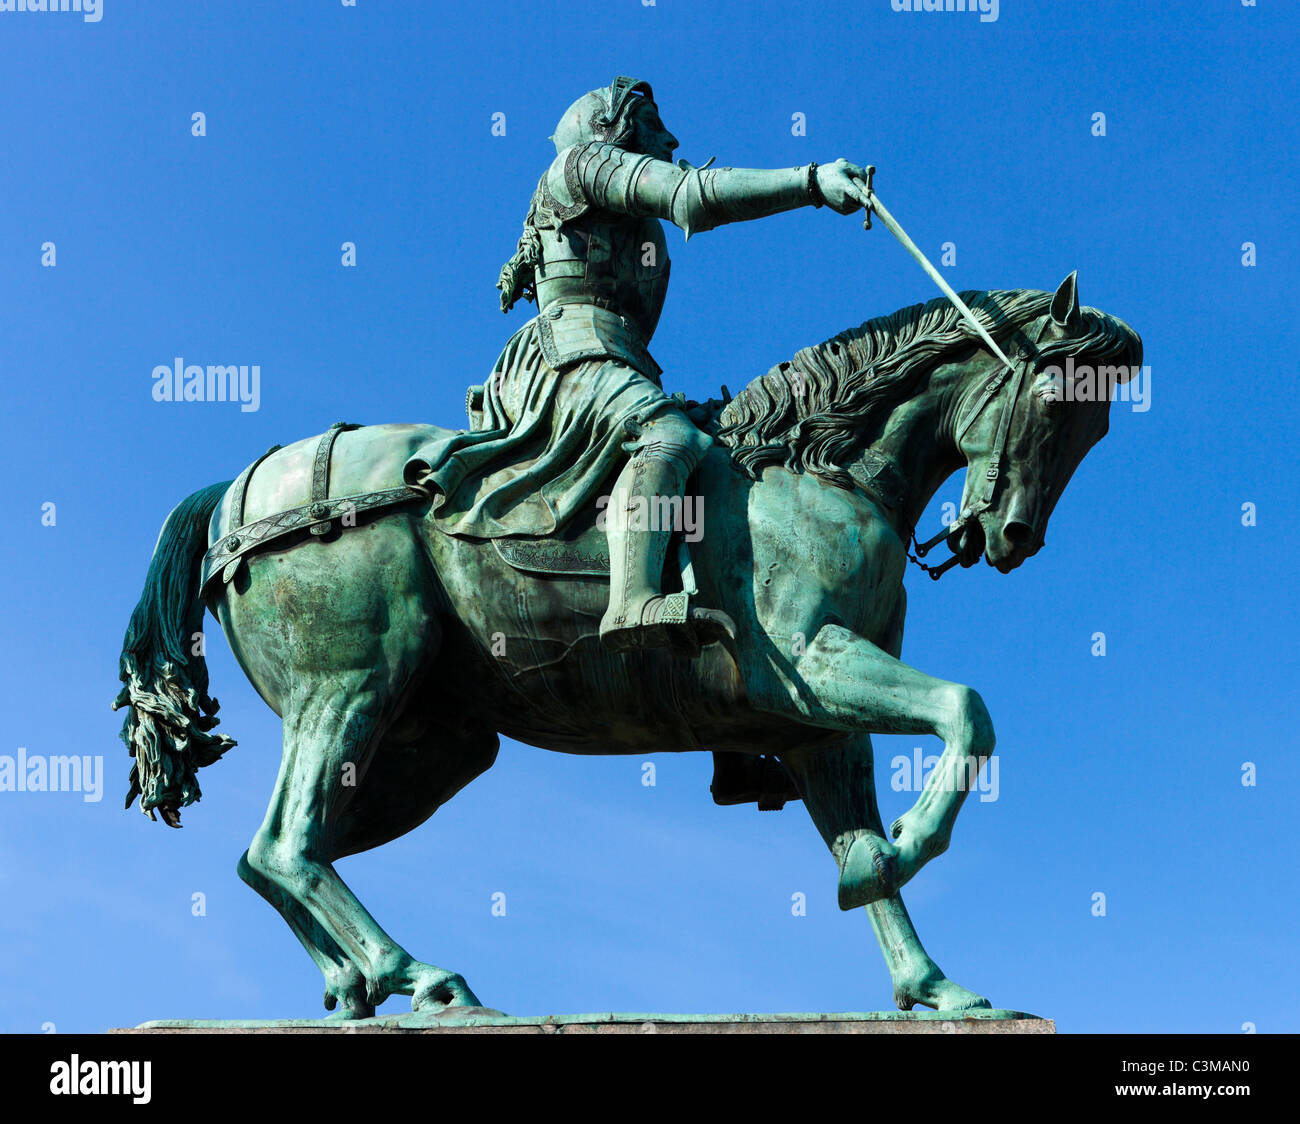 Statue of Joan of Arc in the city centre, Place du Martroi, Orleans, France - Stock Image